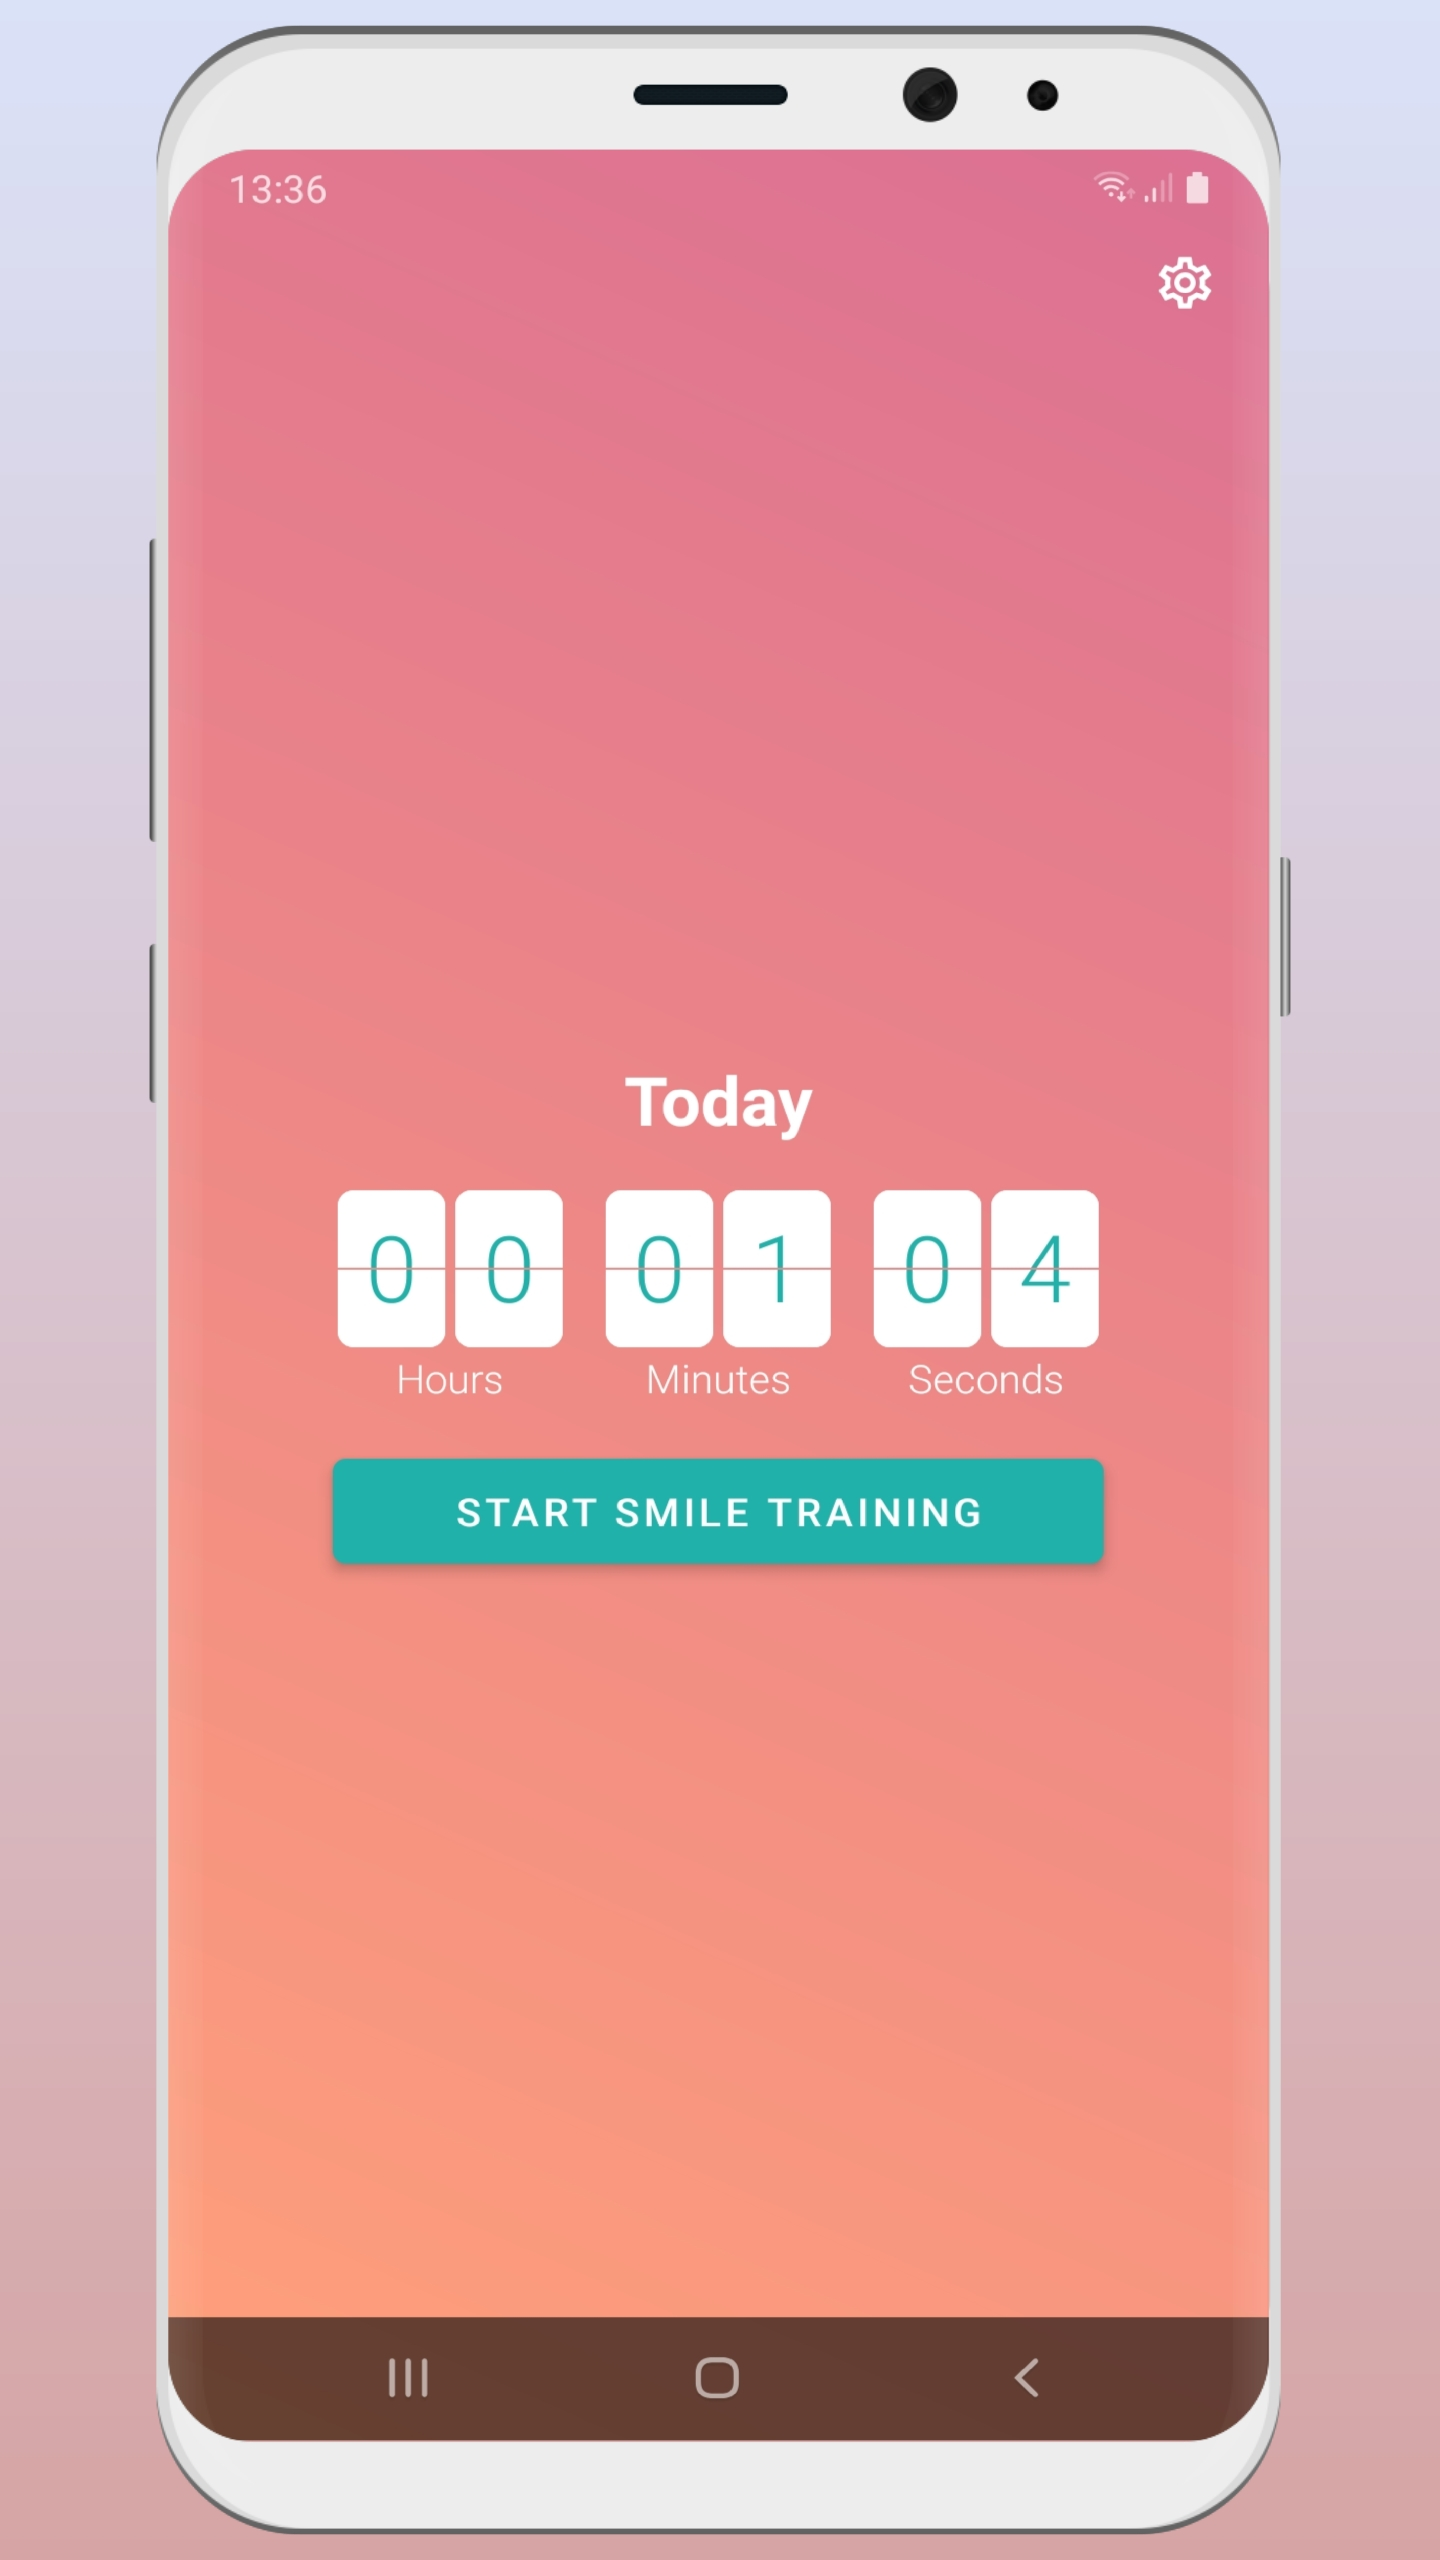 Smile camera - train your smile everyday